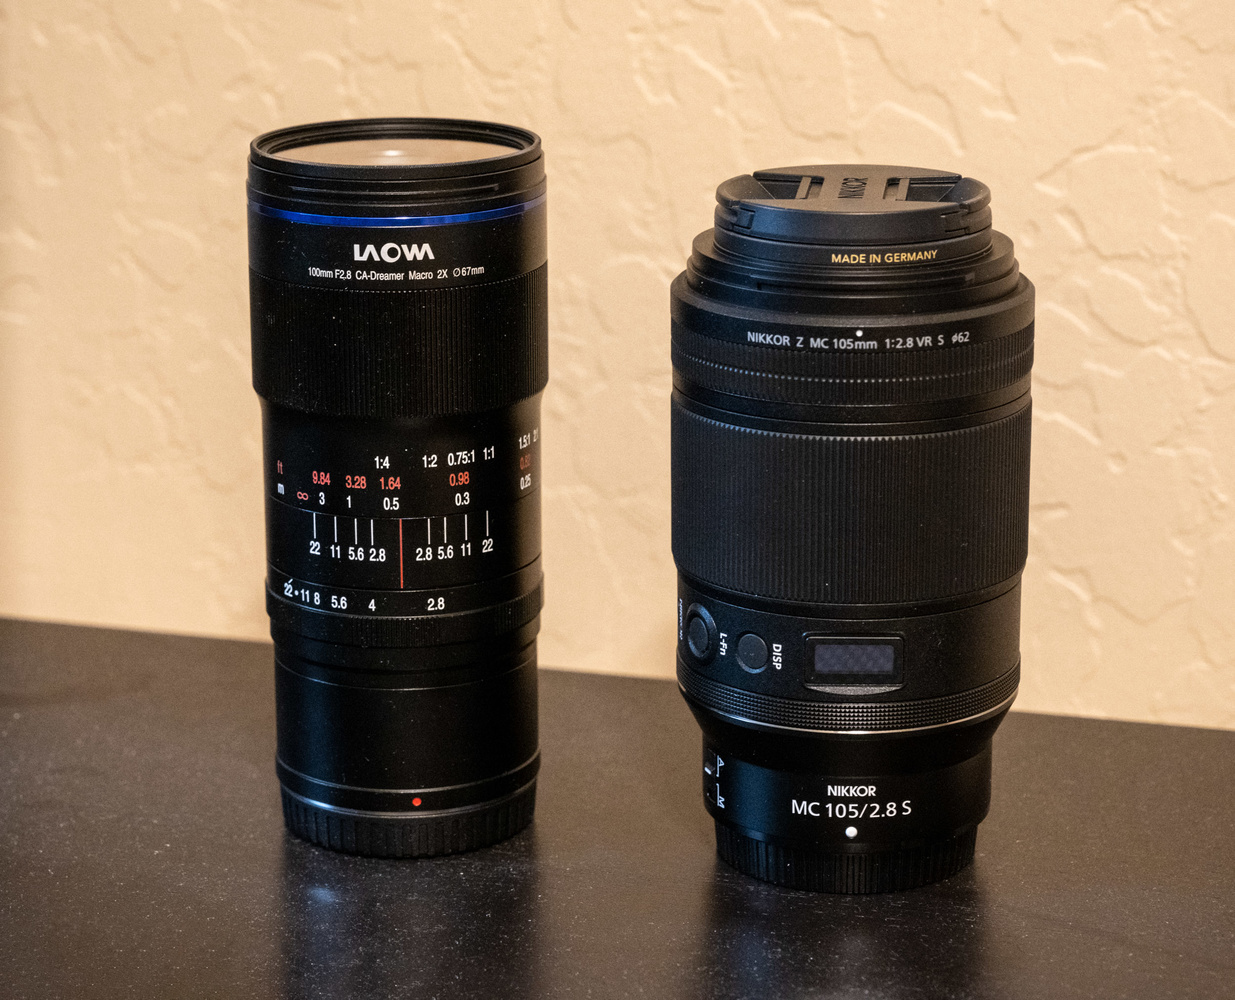 2x Macro at Half the Price: Fstoppers Reviews Laowa's 100mm f/2.8 Macro Lens 66